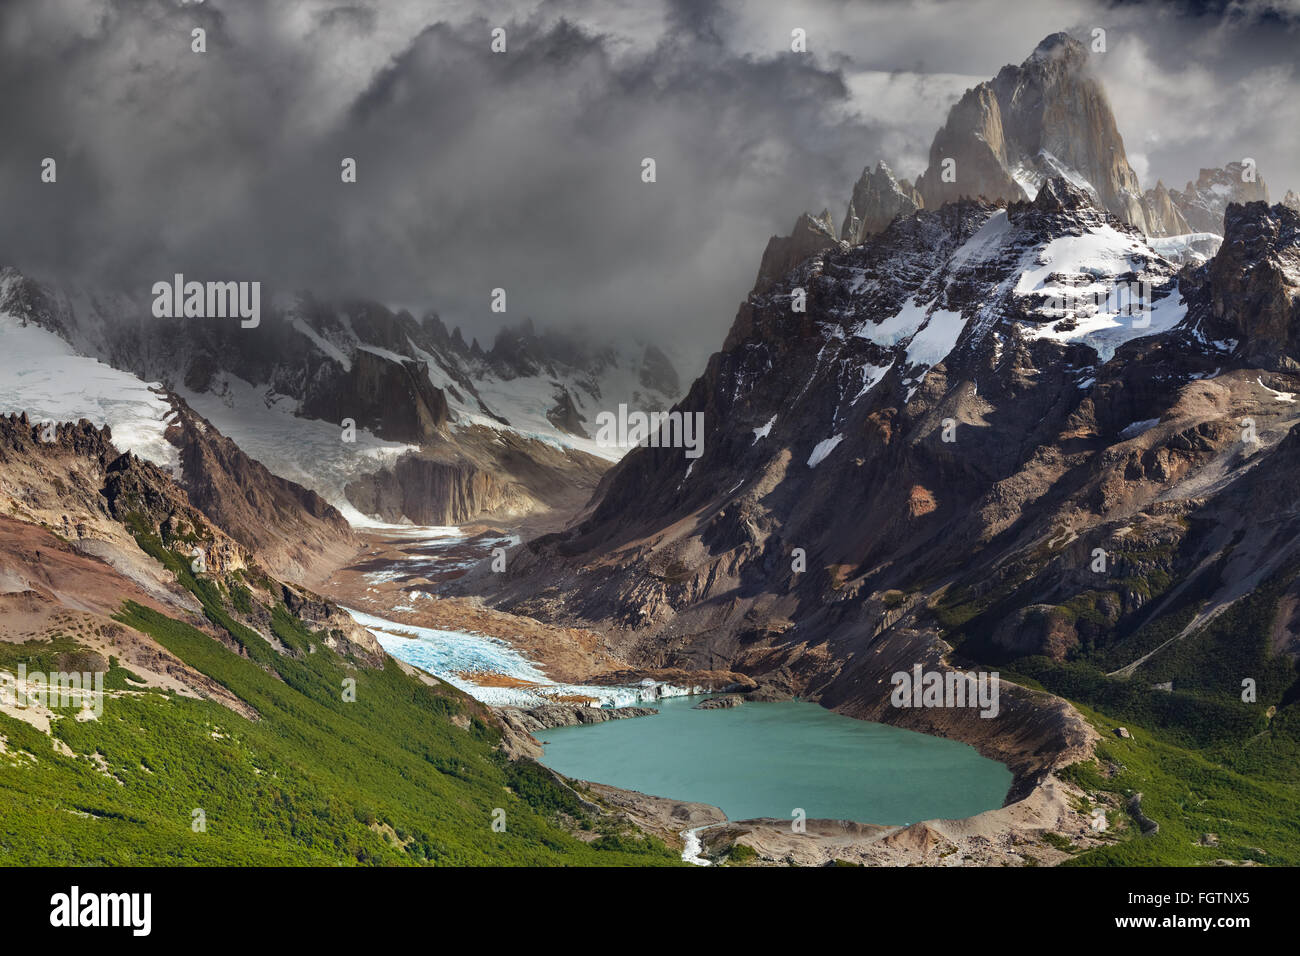 Mount Fitz Roy and laguna Torre, Los Glaciares National Park, Patagonia, Argentina - Stock Image